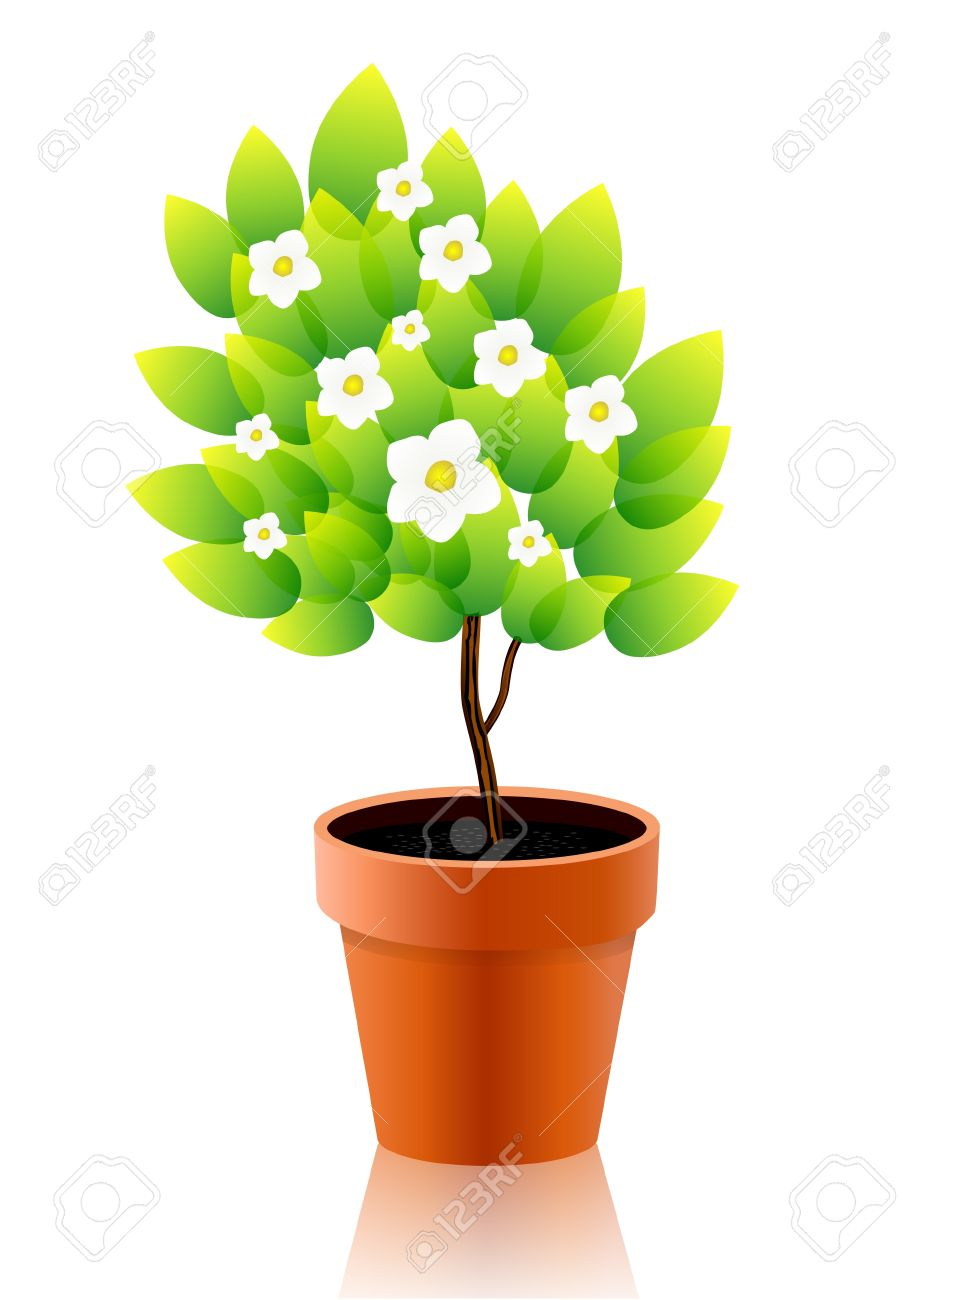 clipart free stock Planting clipart potted plant. .